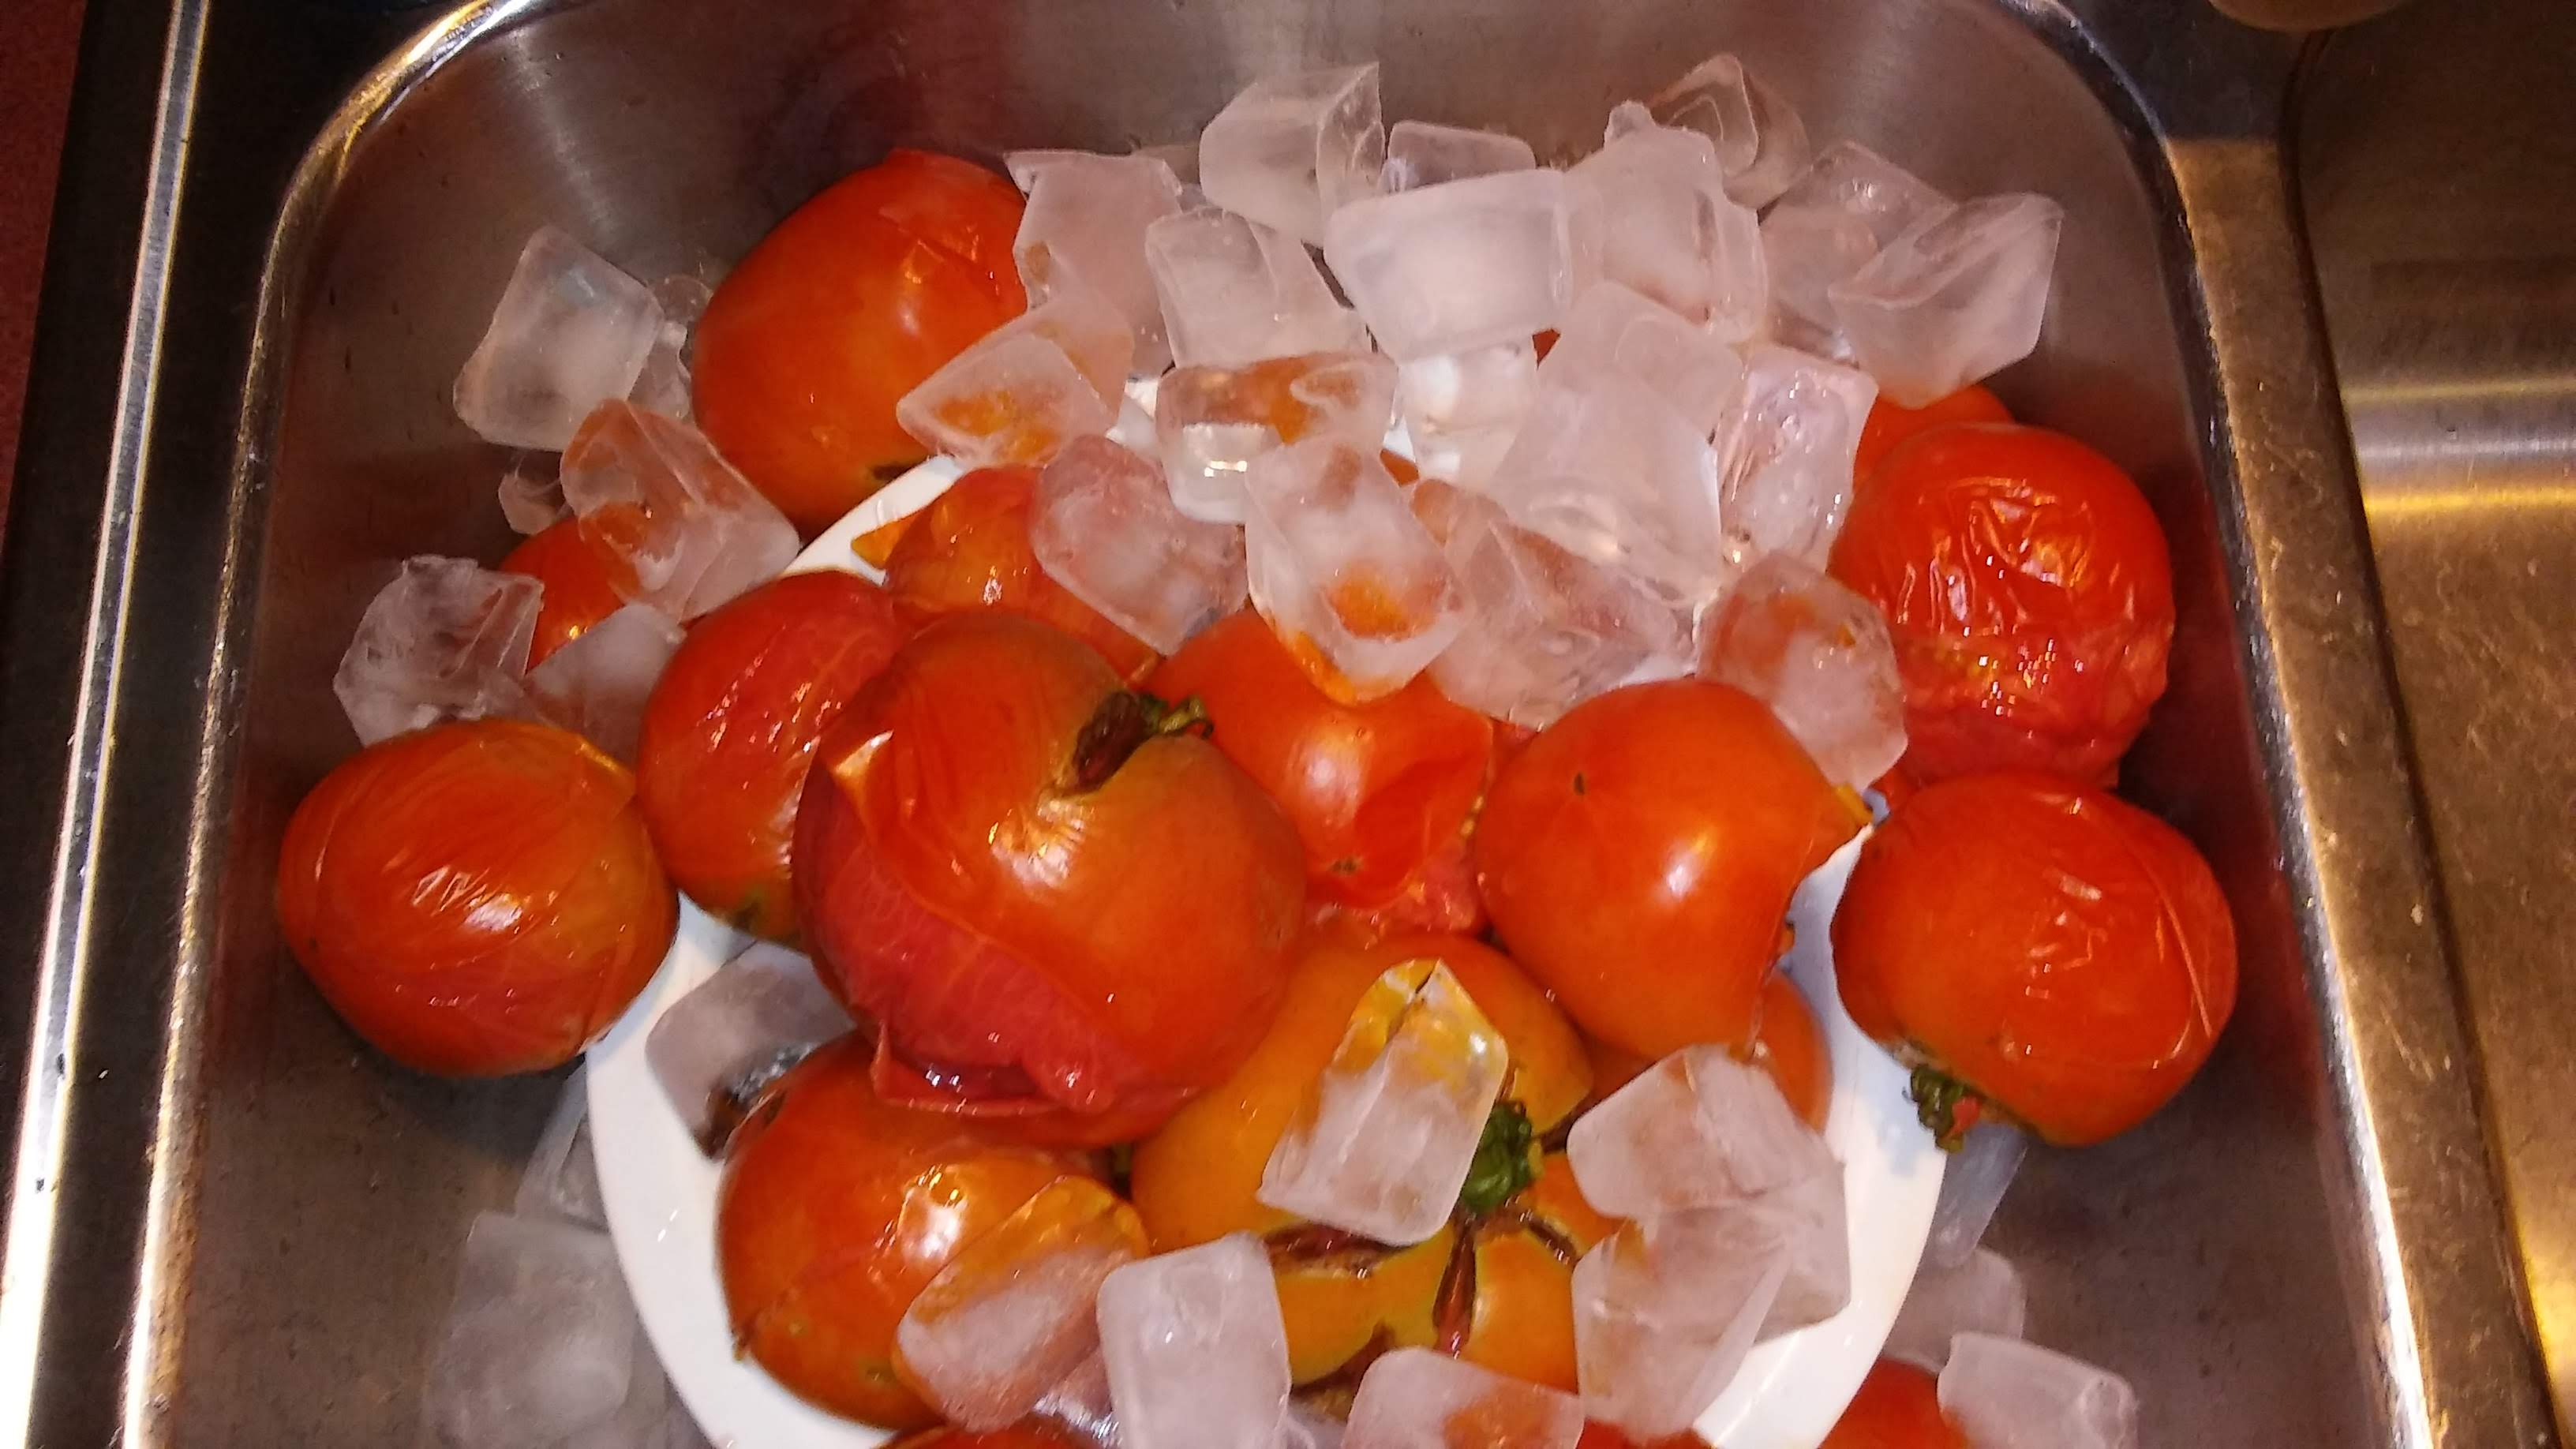 Pour Tomatoes into a colander and dump ice onto them